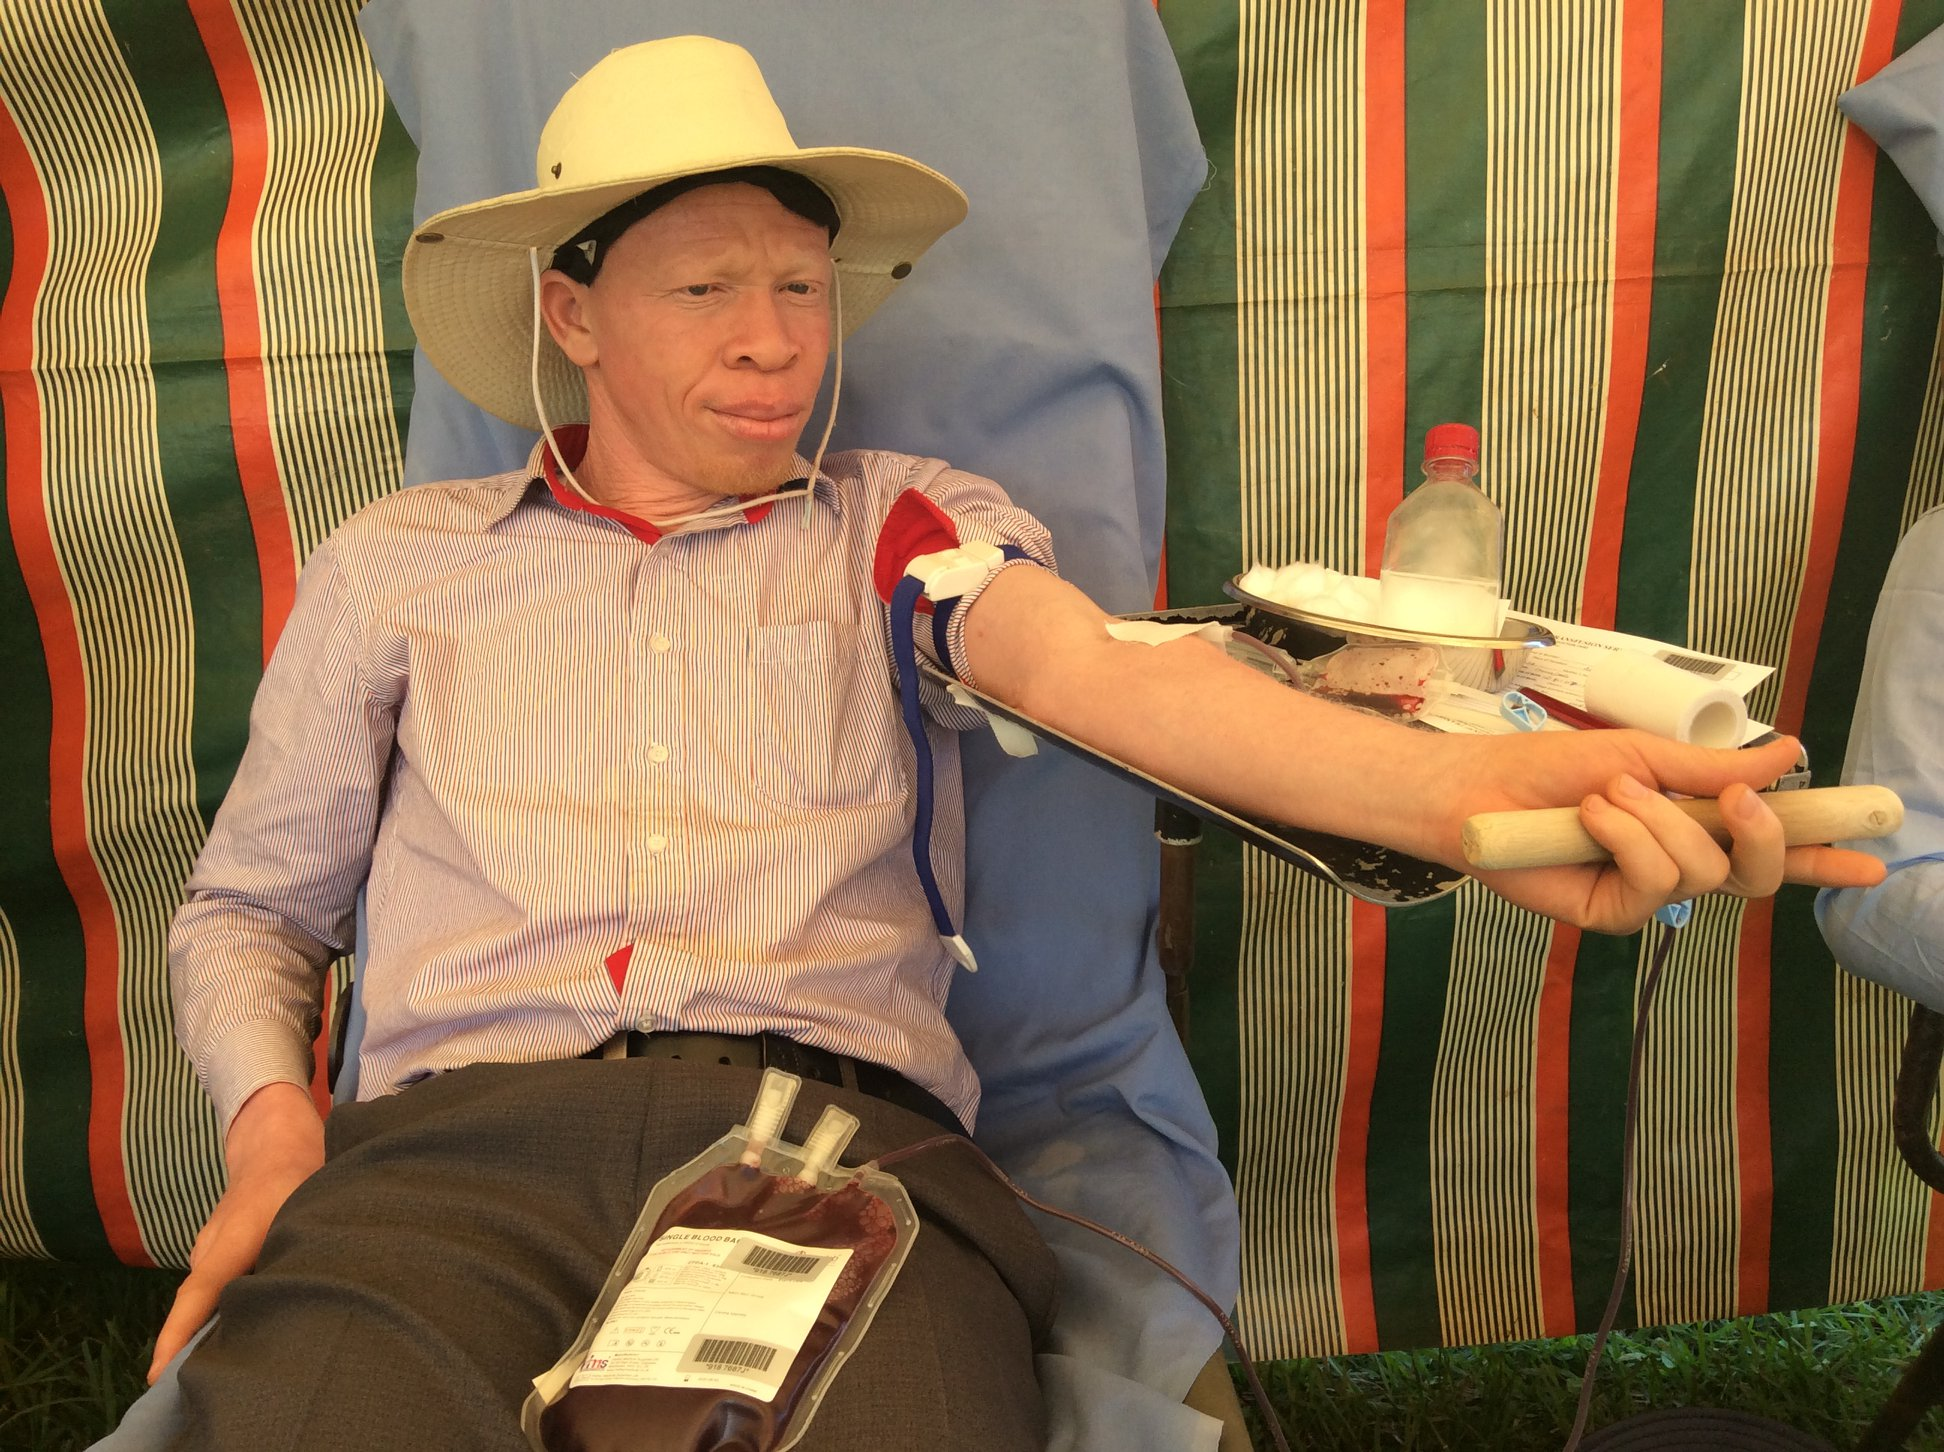 A SNUPA team member donates blood